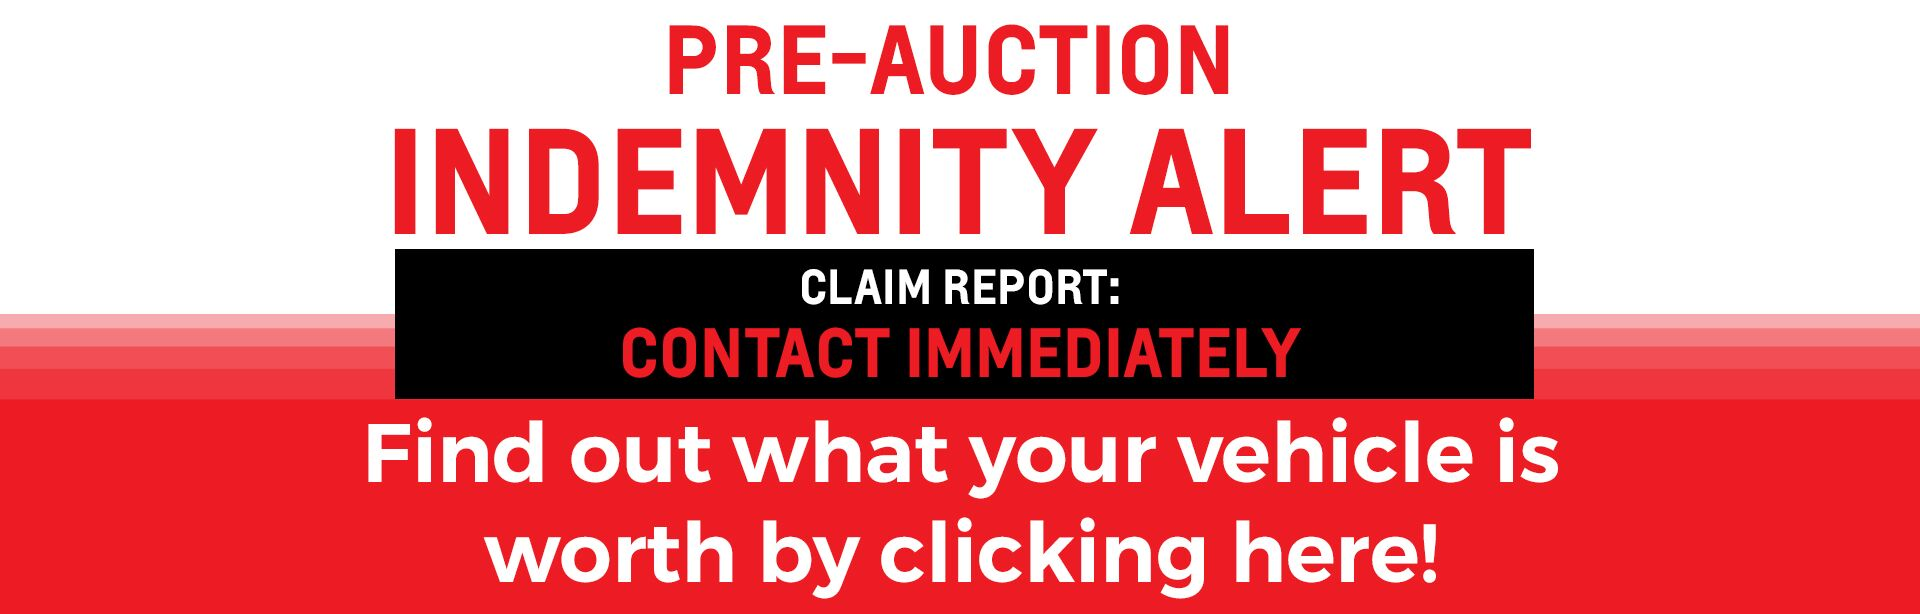 Pre Auction Indemnity Alert